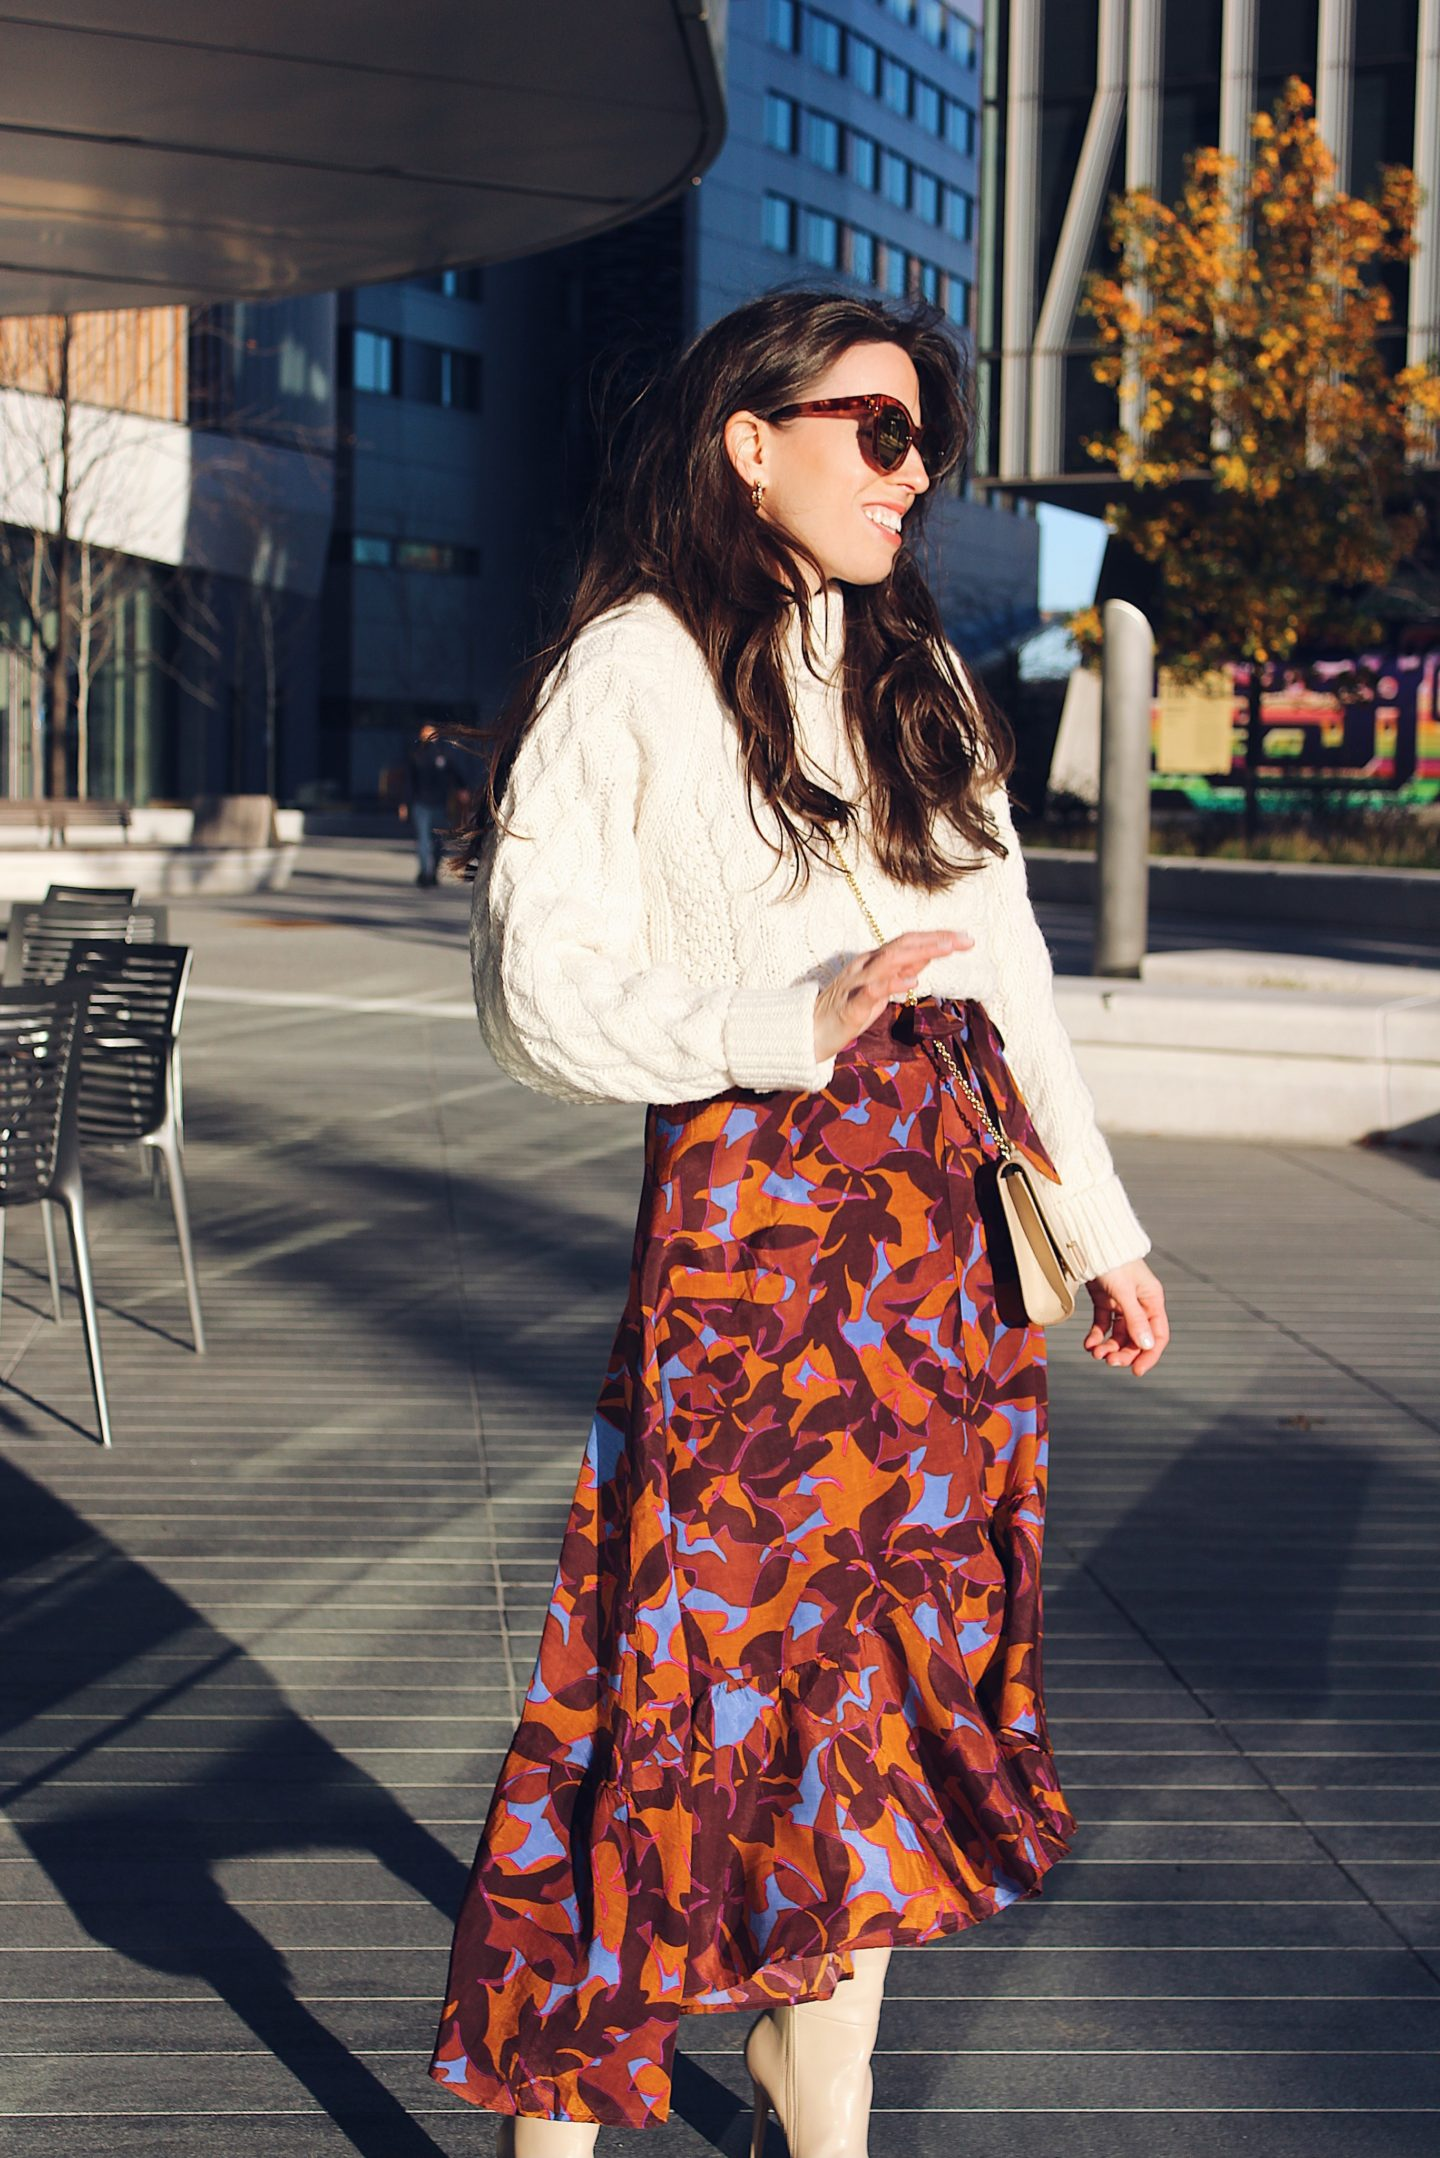 How to Wear a Floral Wrap Skirt and Cable Knit Sweater Outfit Idea -- Ana Florentina